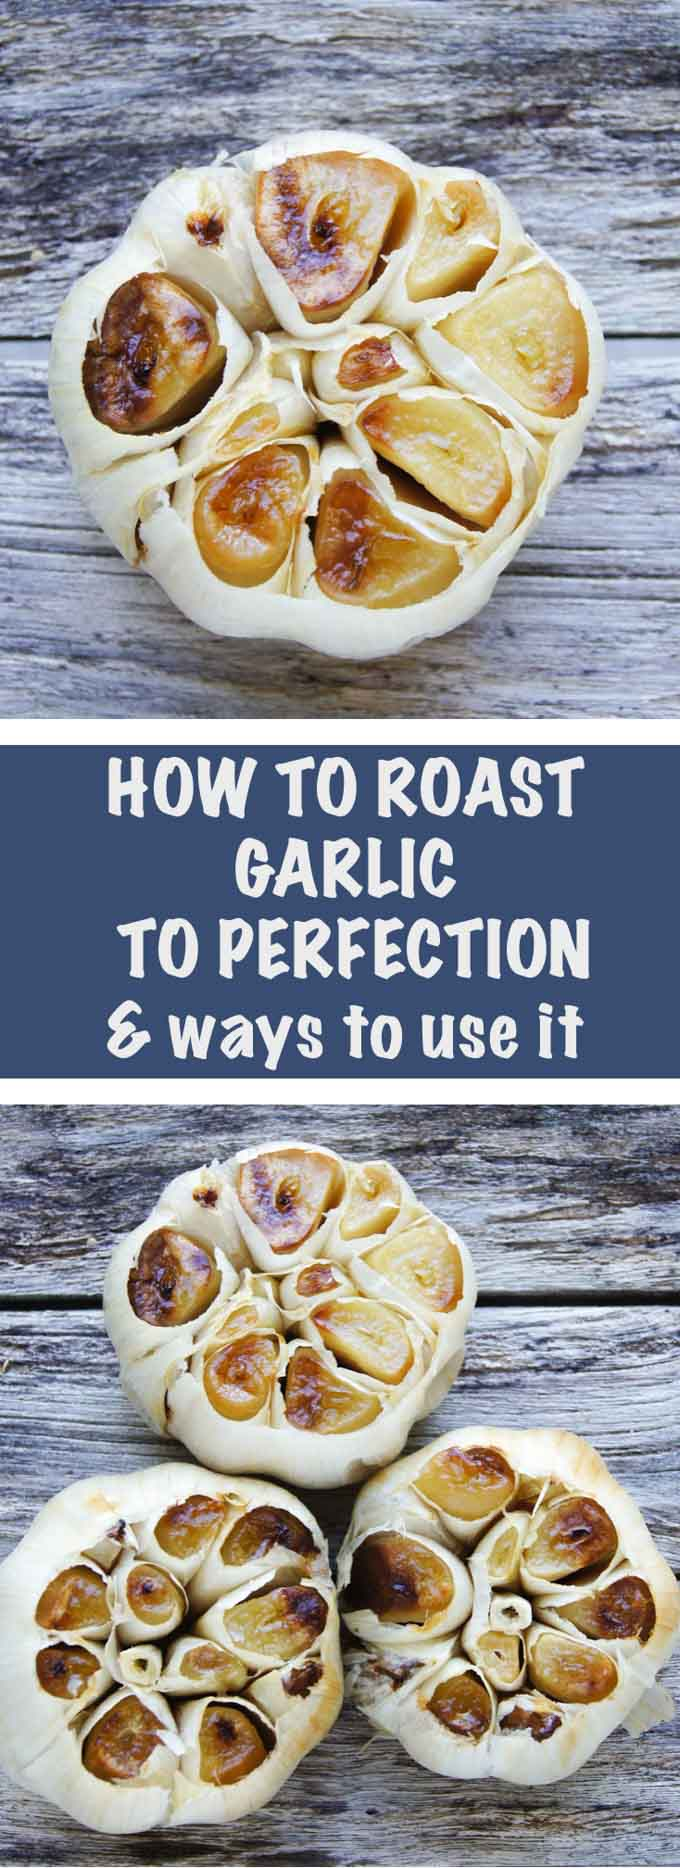 How to roast garlic and stay healthy all year | GARLIC MATTERS